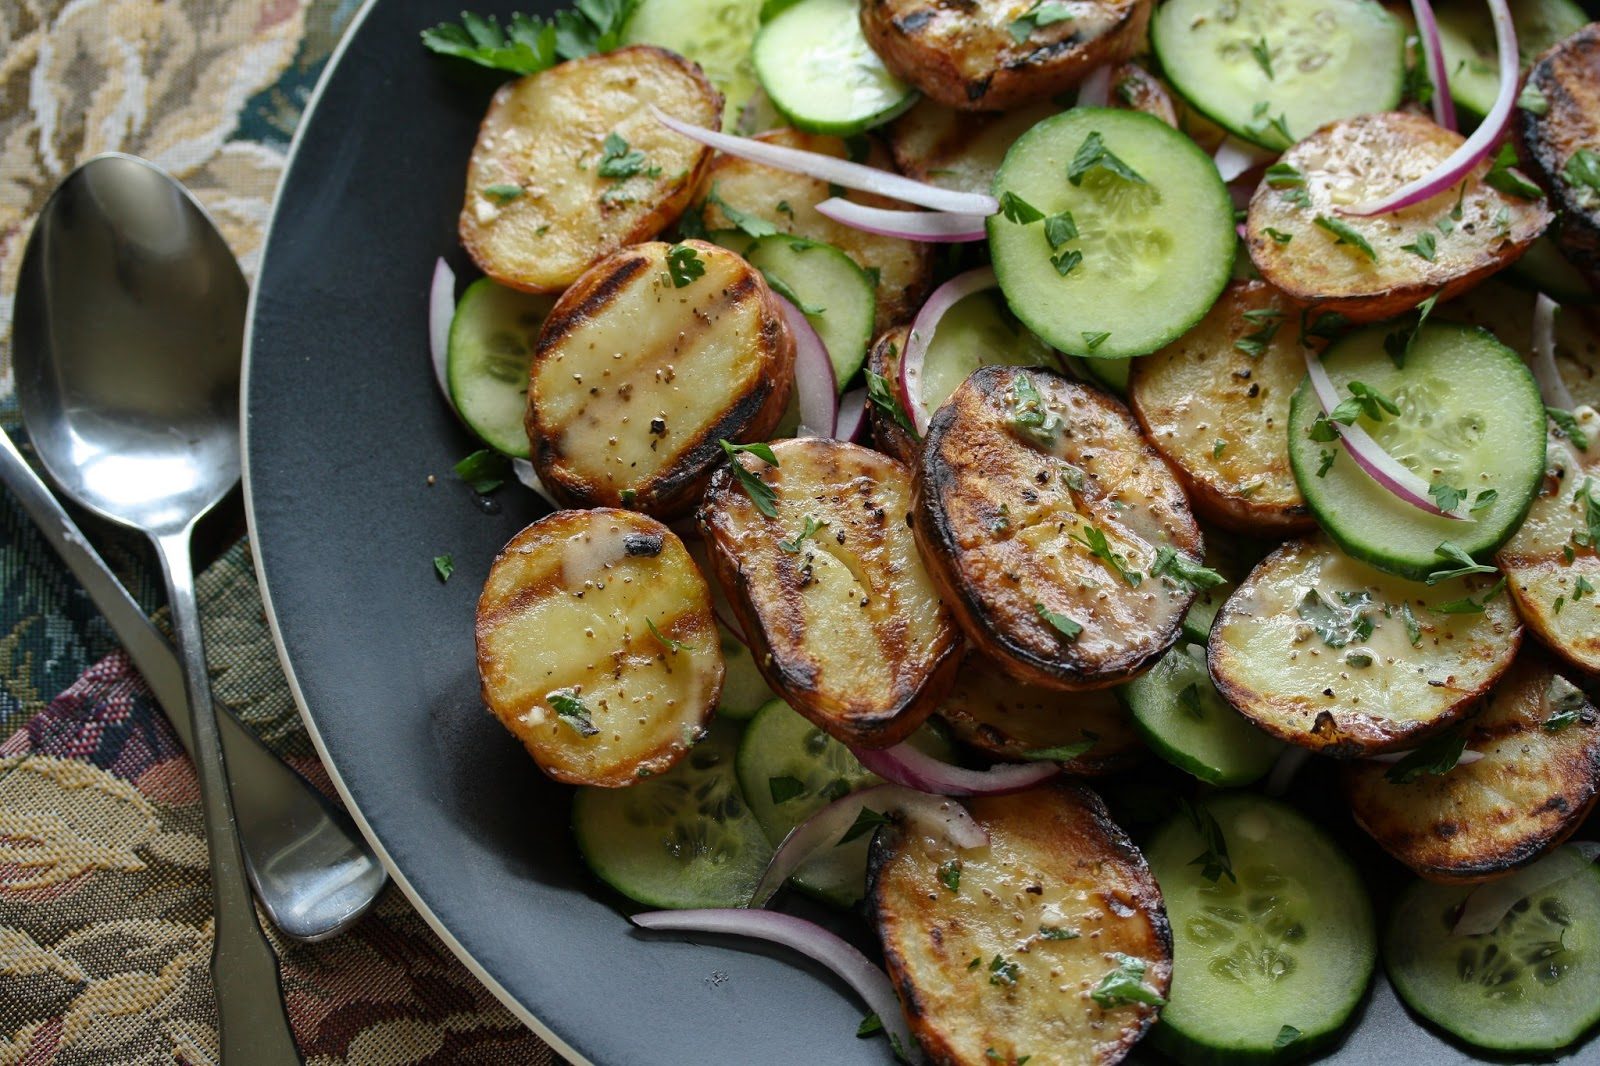 Grilled Potato Salad with Cucumbers and Fresh Herbs from the Garden ...